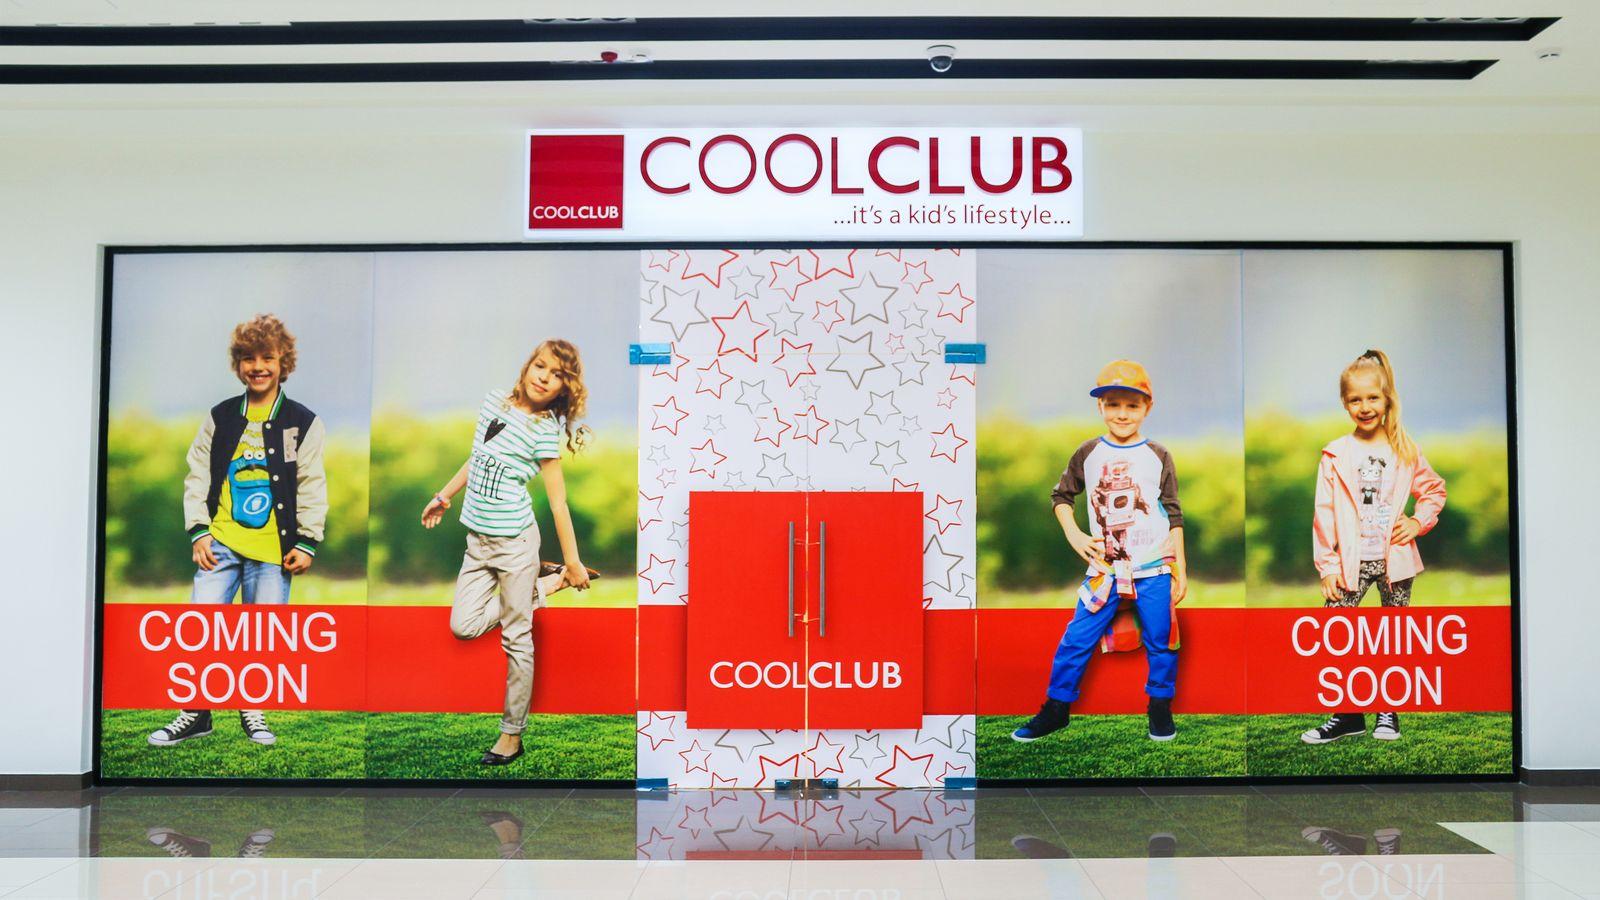 Cool Club light-up 3d sign letters made of acrylic and aluminum for clothing store branding inside a shopping mall